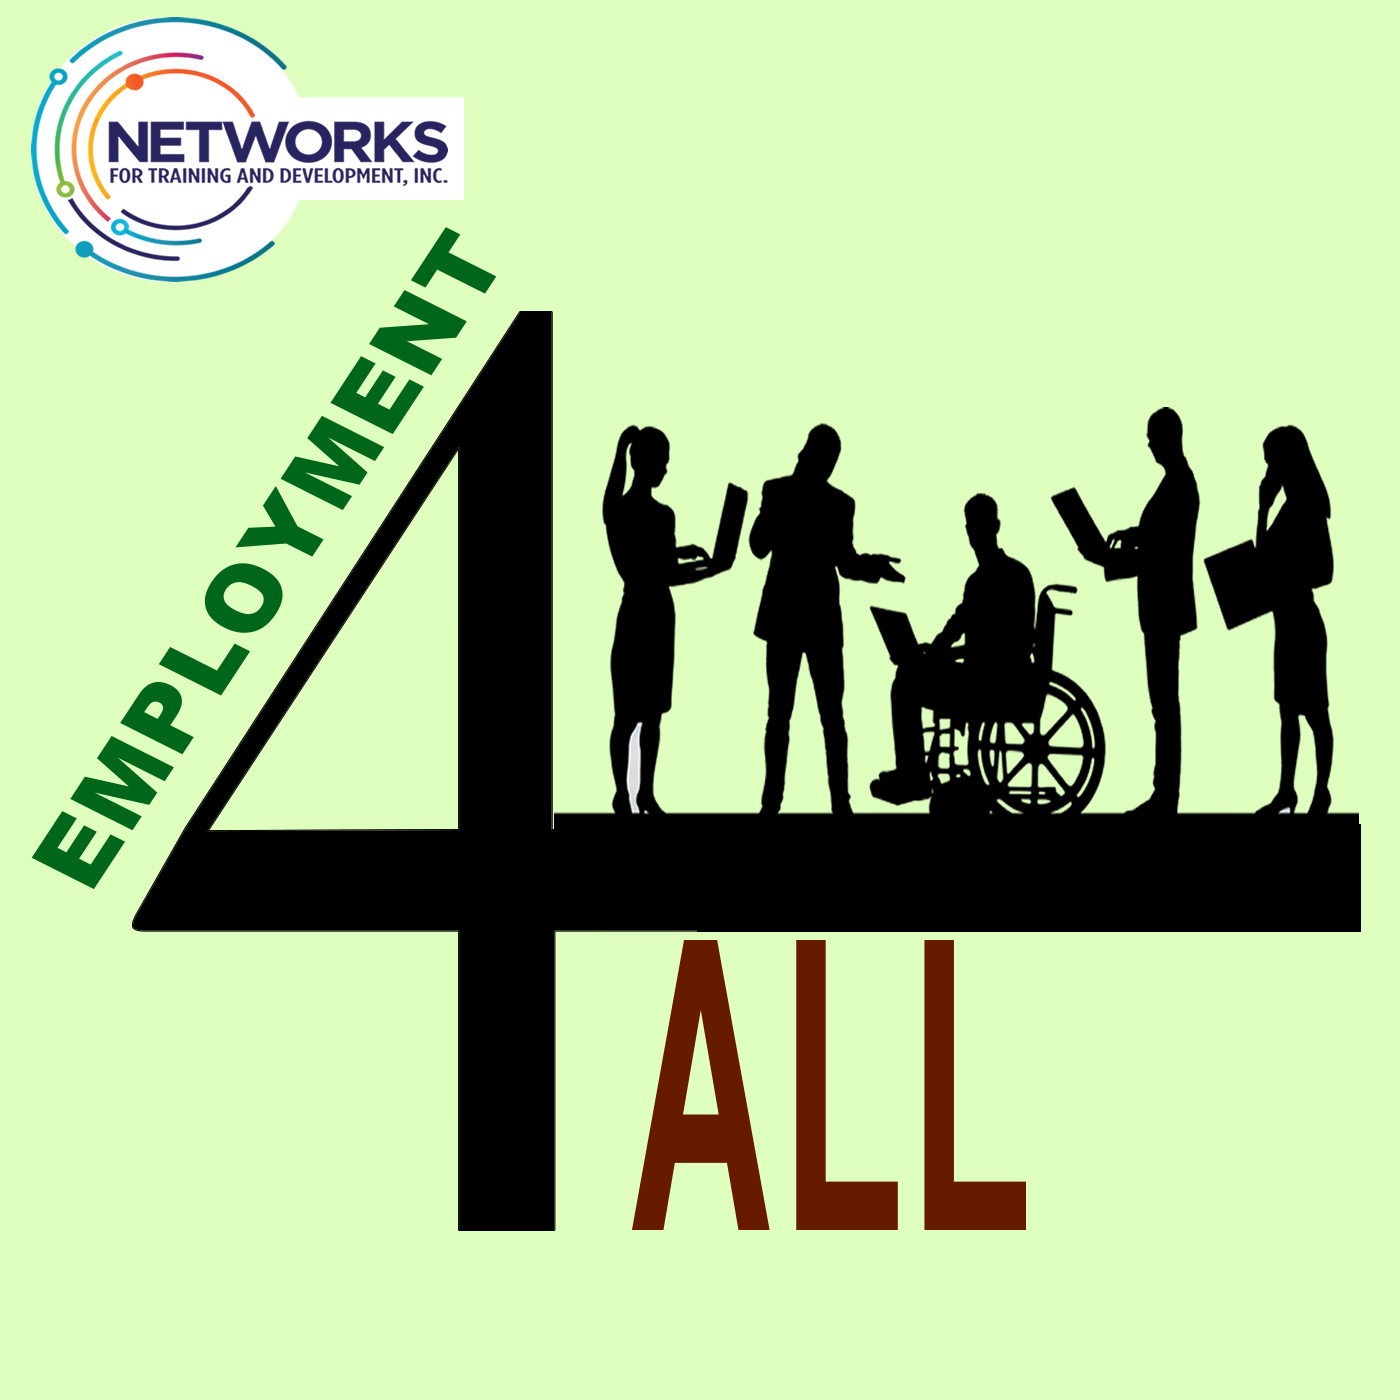 TEXT:  Employment 4 All [IMAGE:  Networks logo with images of people